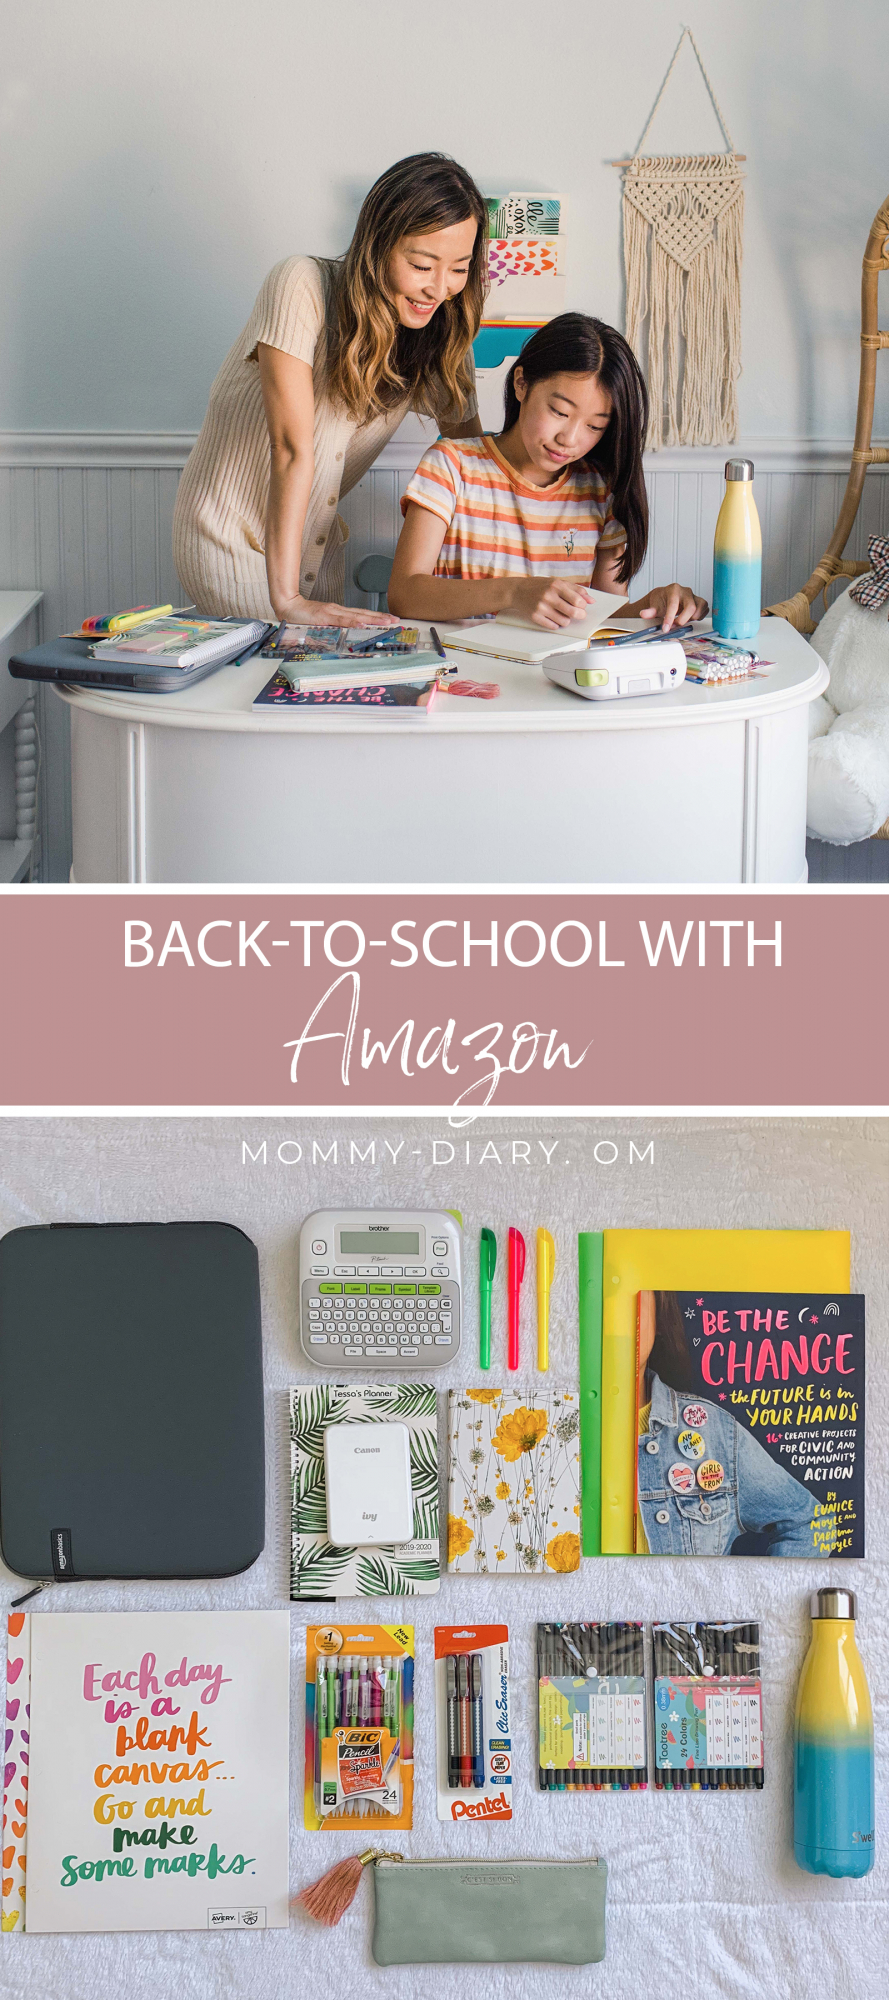 back-to-school-amazon-pinterest